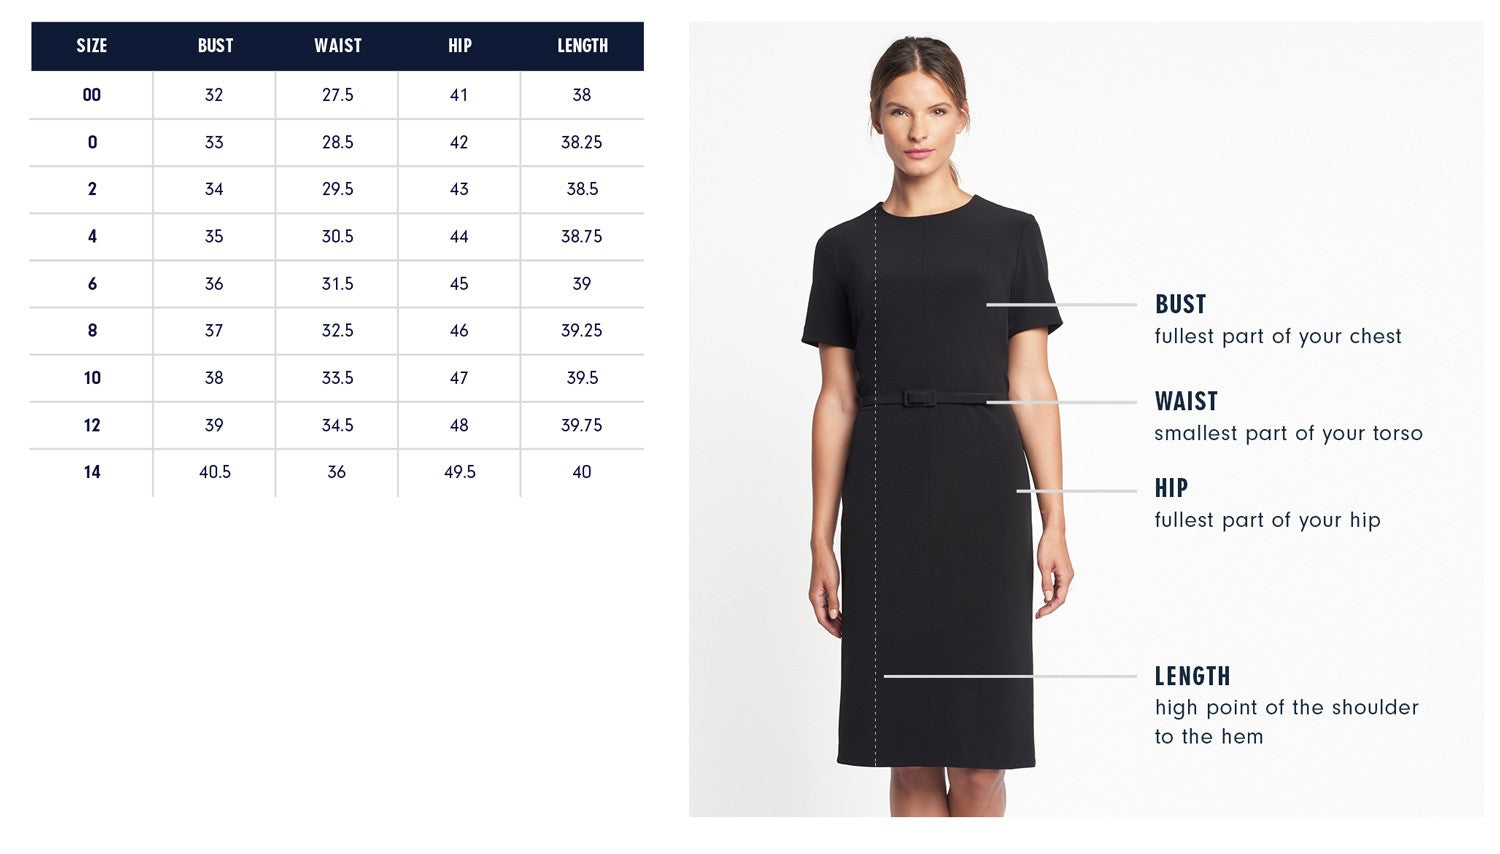 Minetta Dress Size Chart | Of Mercer